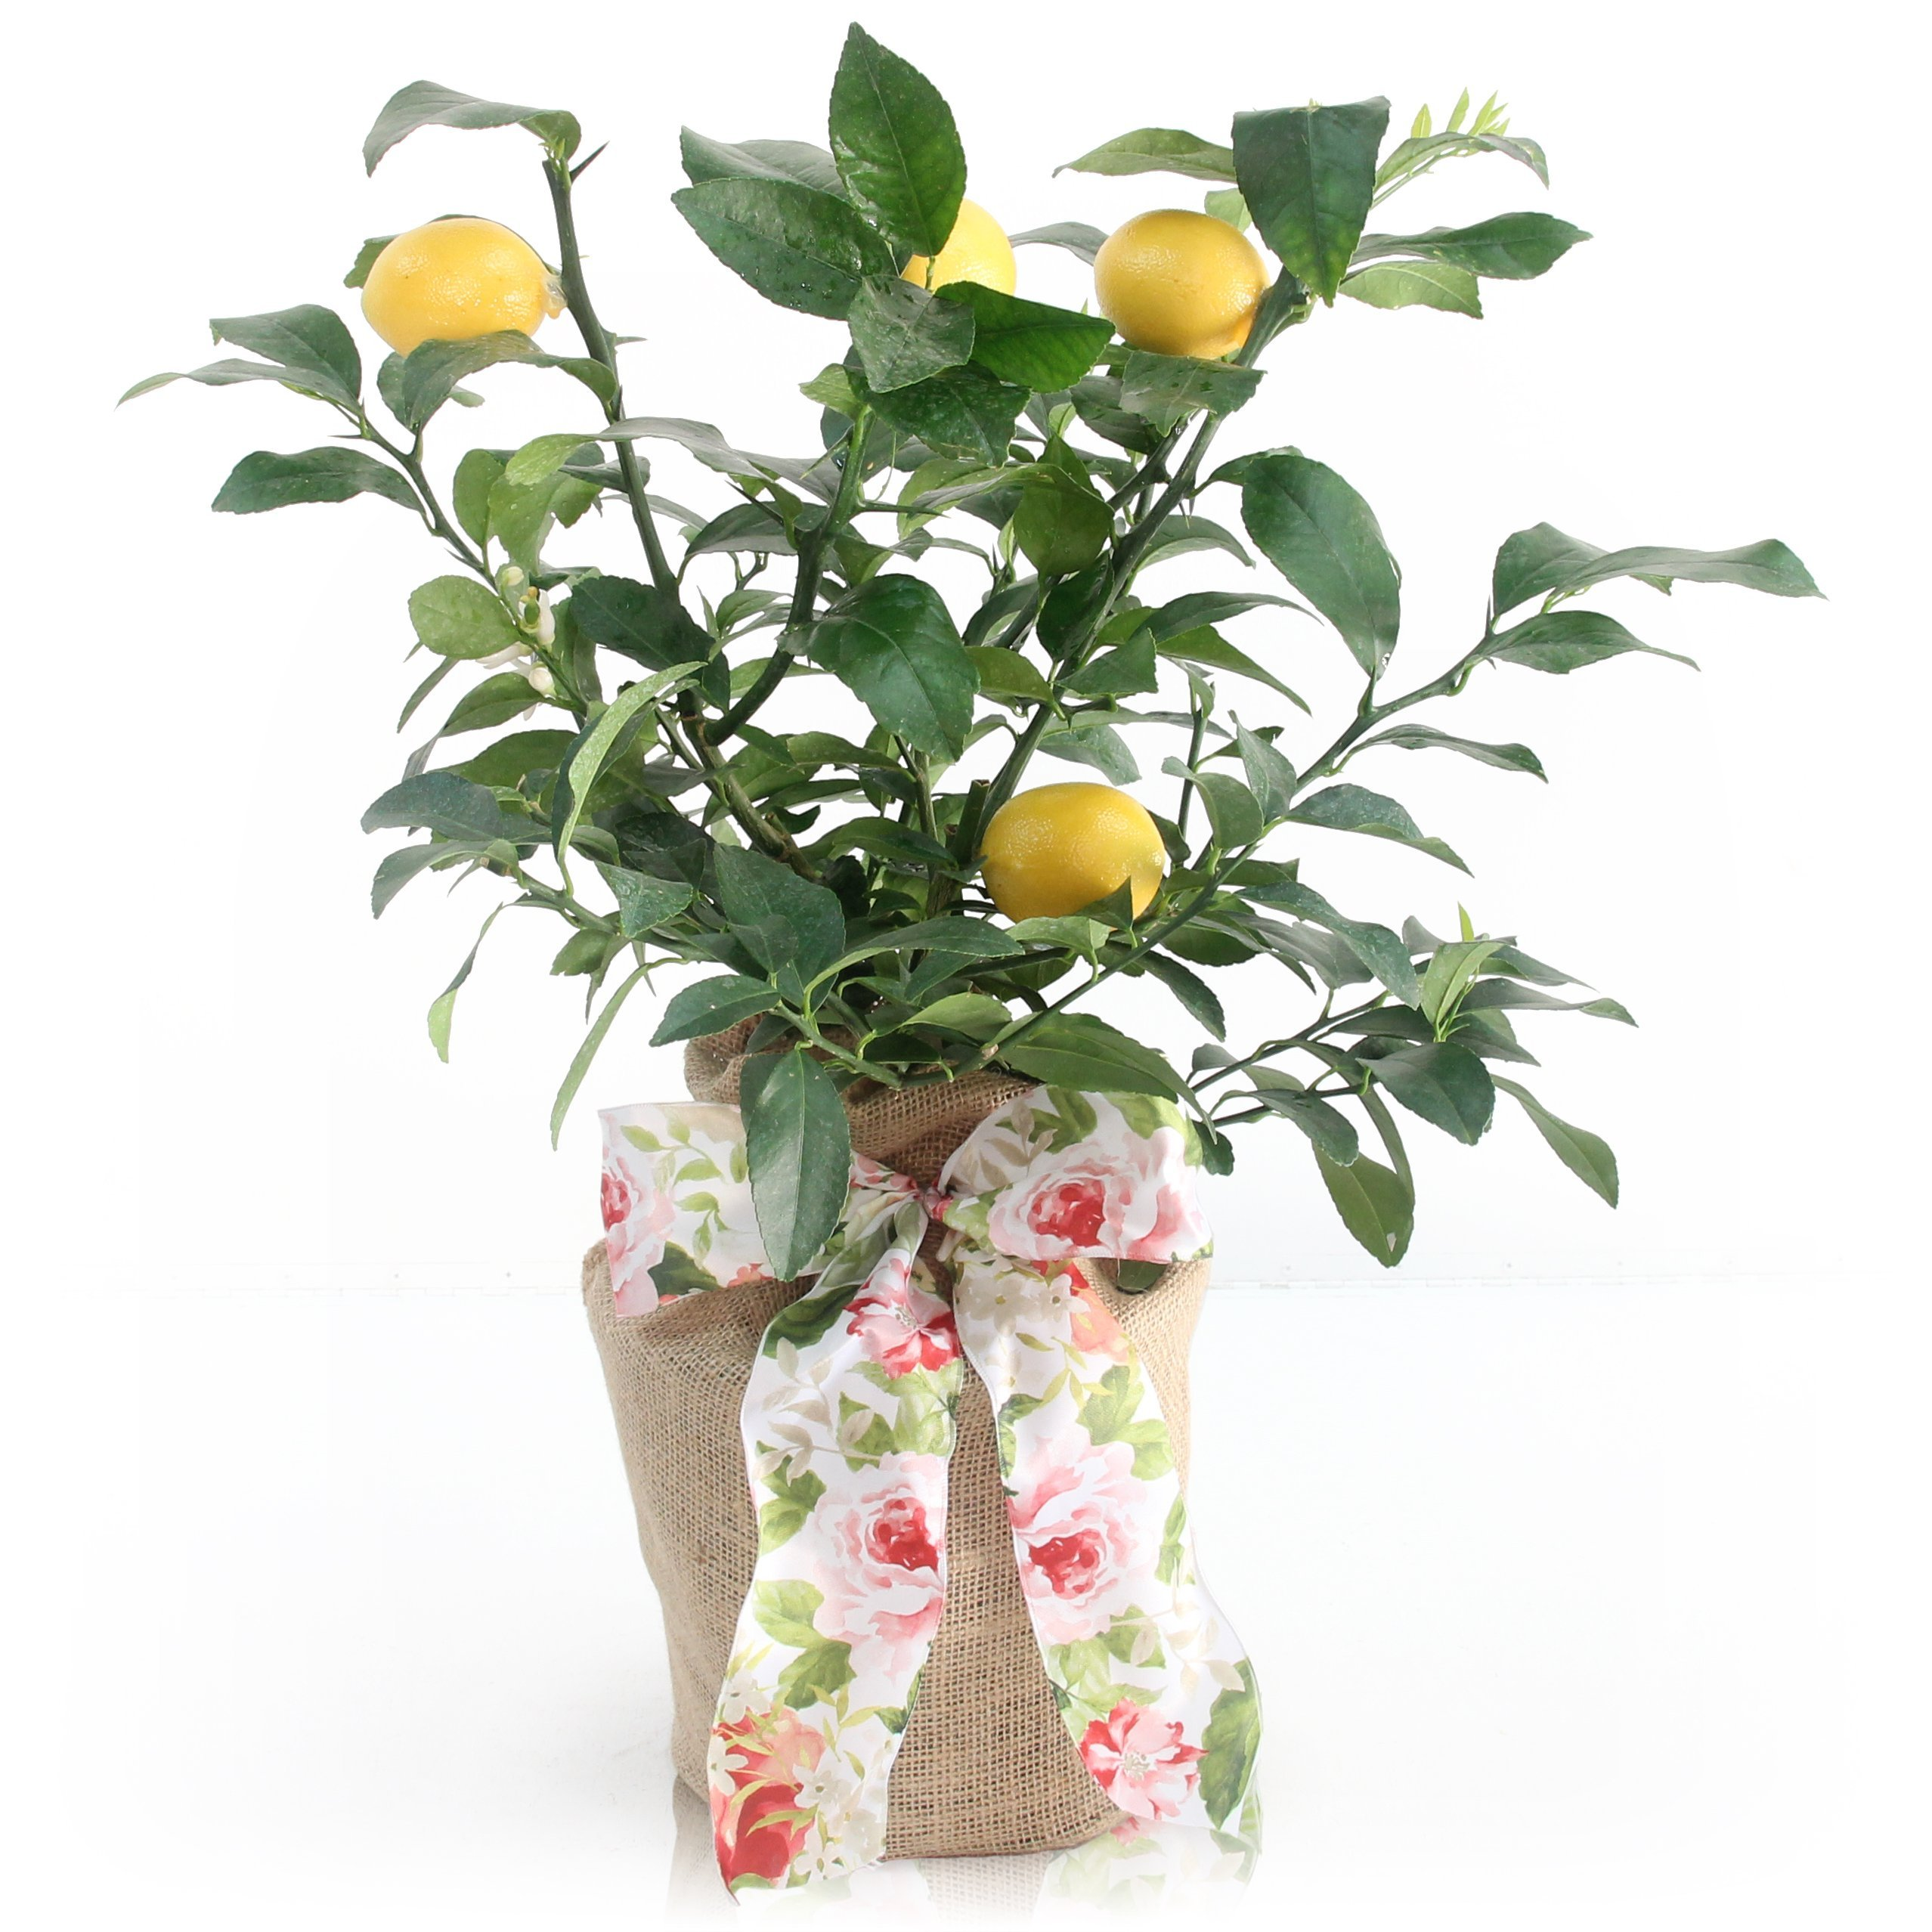 Mother's Day Meyer Lemon Gift Tree by The Magnolia Company - Get Fruit 1st Year, Dwarf Fruit Tree with Juicy Sweet Lemons, No Ship to TX, LA, AZ and CA by The Magnolia Company (Image #1)